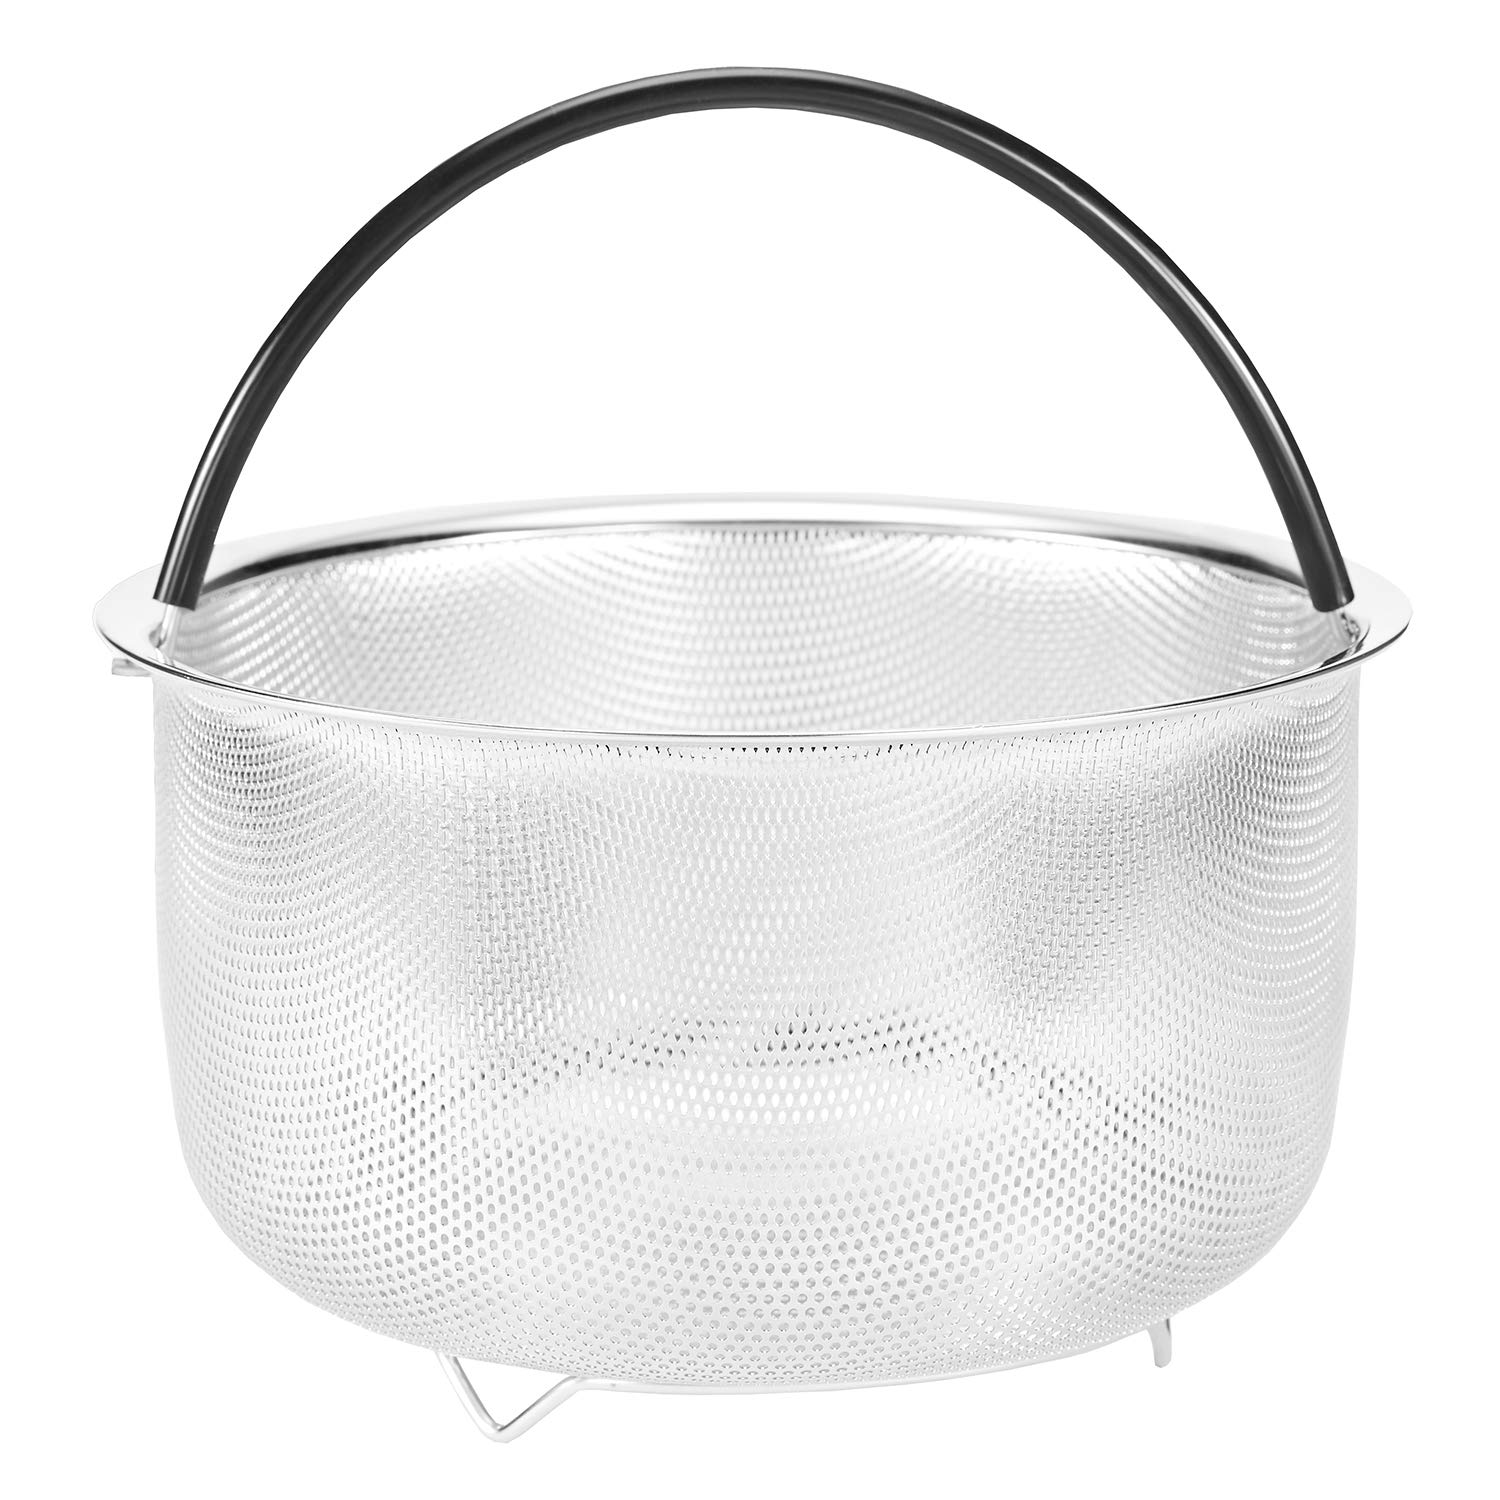 18/8 Stainless Steel Steamer Basket for Instant Pot Accessories 8qt 6 Quart Available Insert Pressure Cooker Rice Egg Vegetable Meat Silicone Handle Dishwasher Safe Welldeal HK0004-5